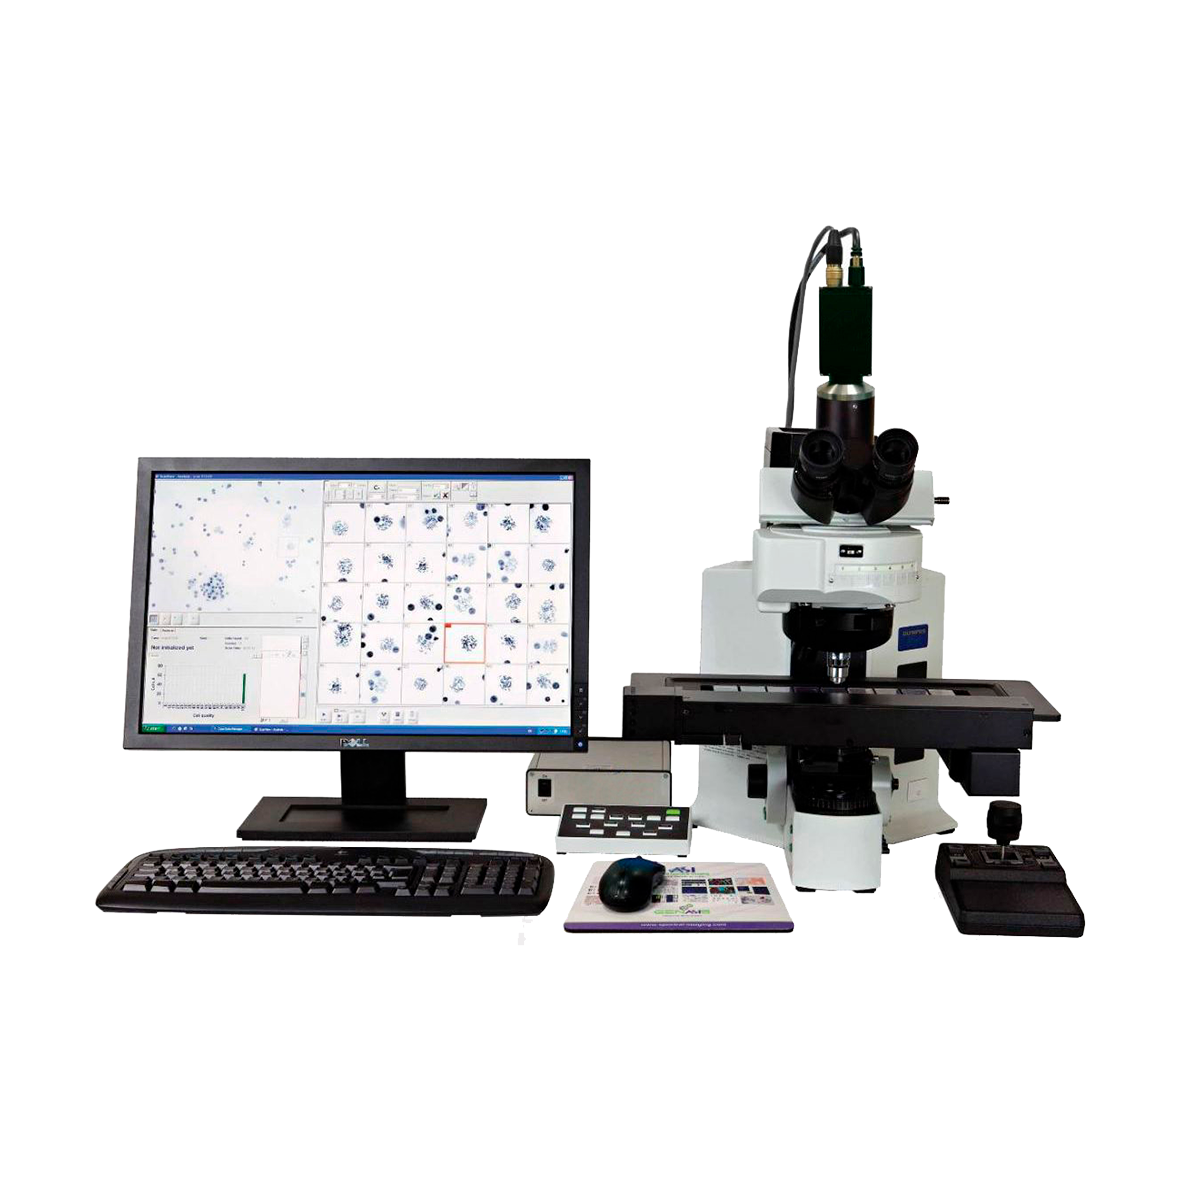 Cell imaging system